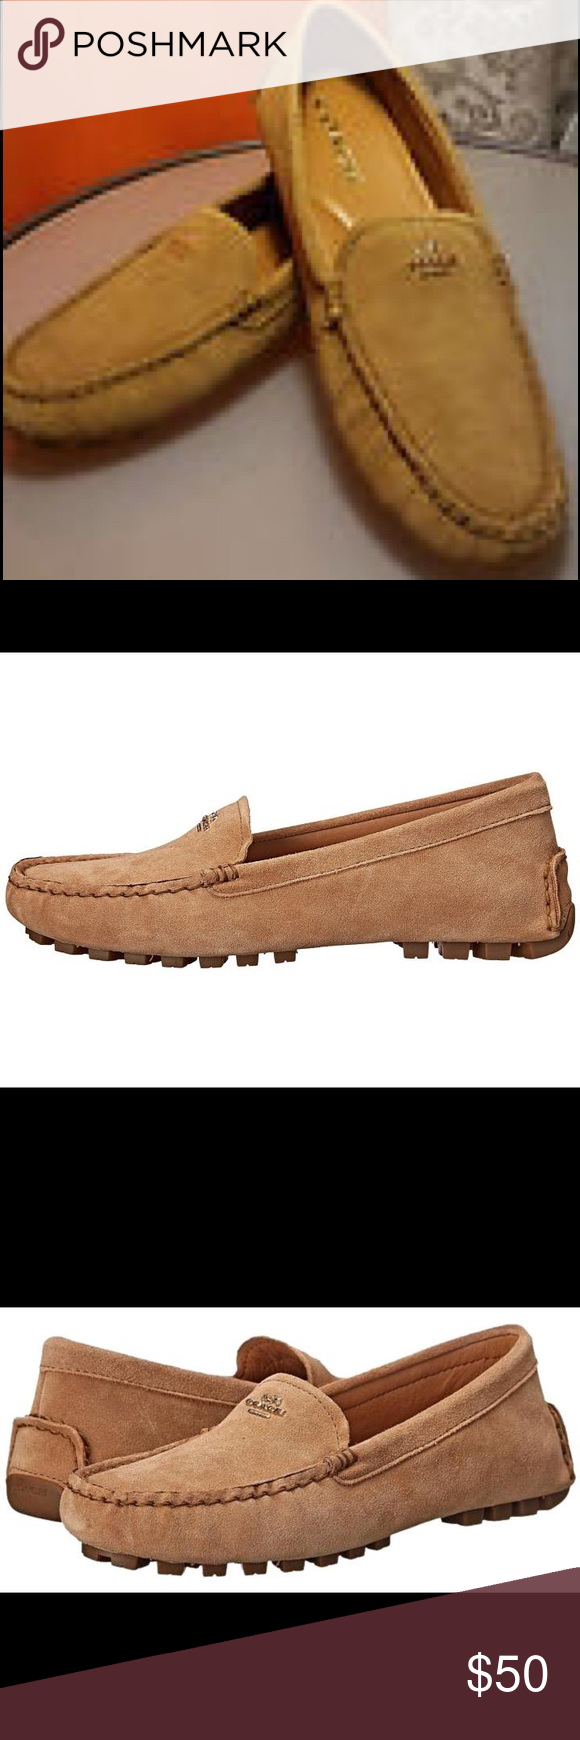 Coach sued flats Plushly padded inside and finished with hand-sewn beef-roll details, this rubber-soled flat updates the iconic driving moc with the subtle texture of suede leather and the bright shine of turnlock hardware. Suede leather upper. Rubber sole. Coach Shoes Moccasins